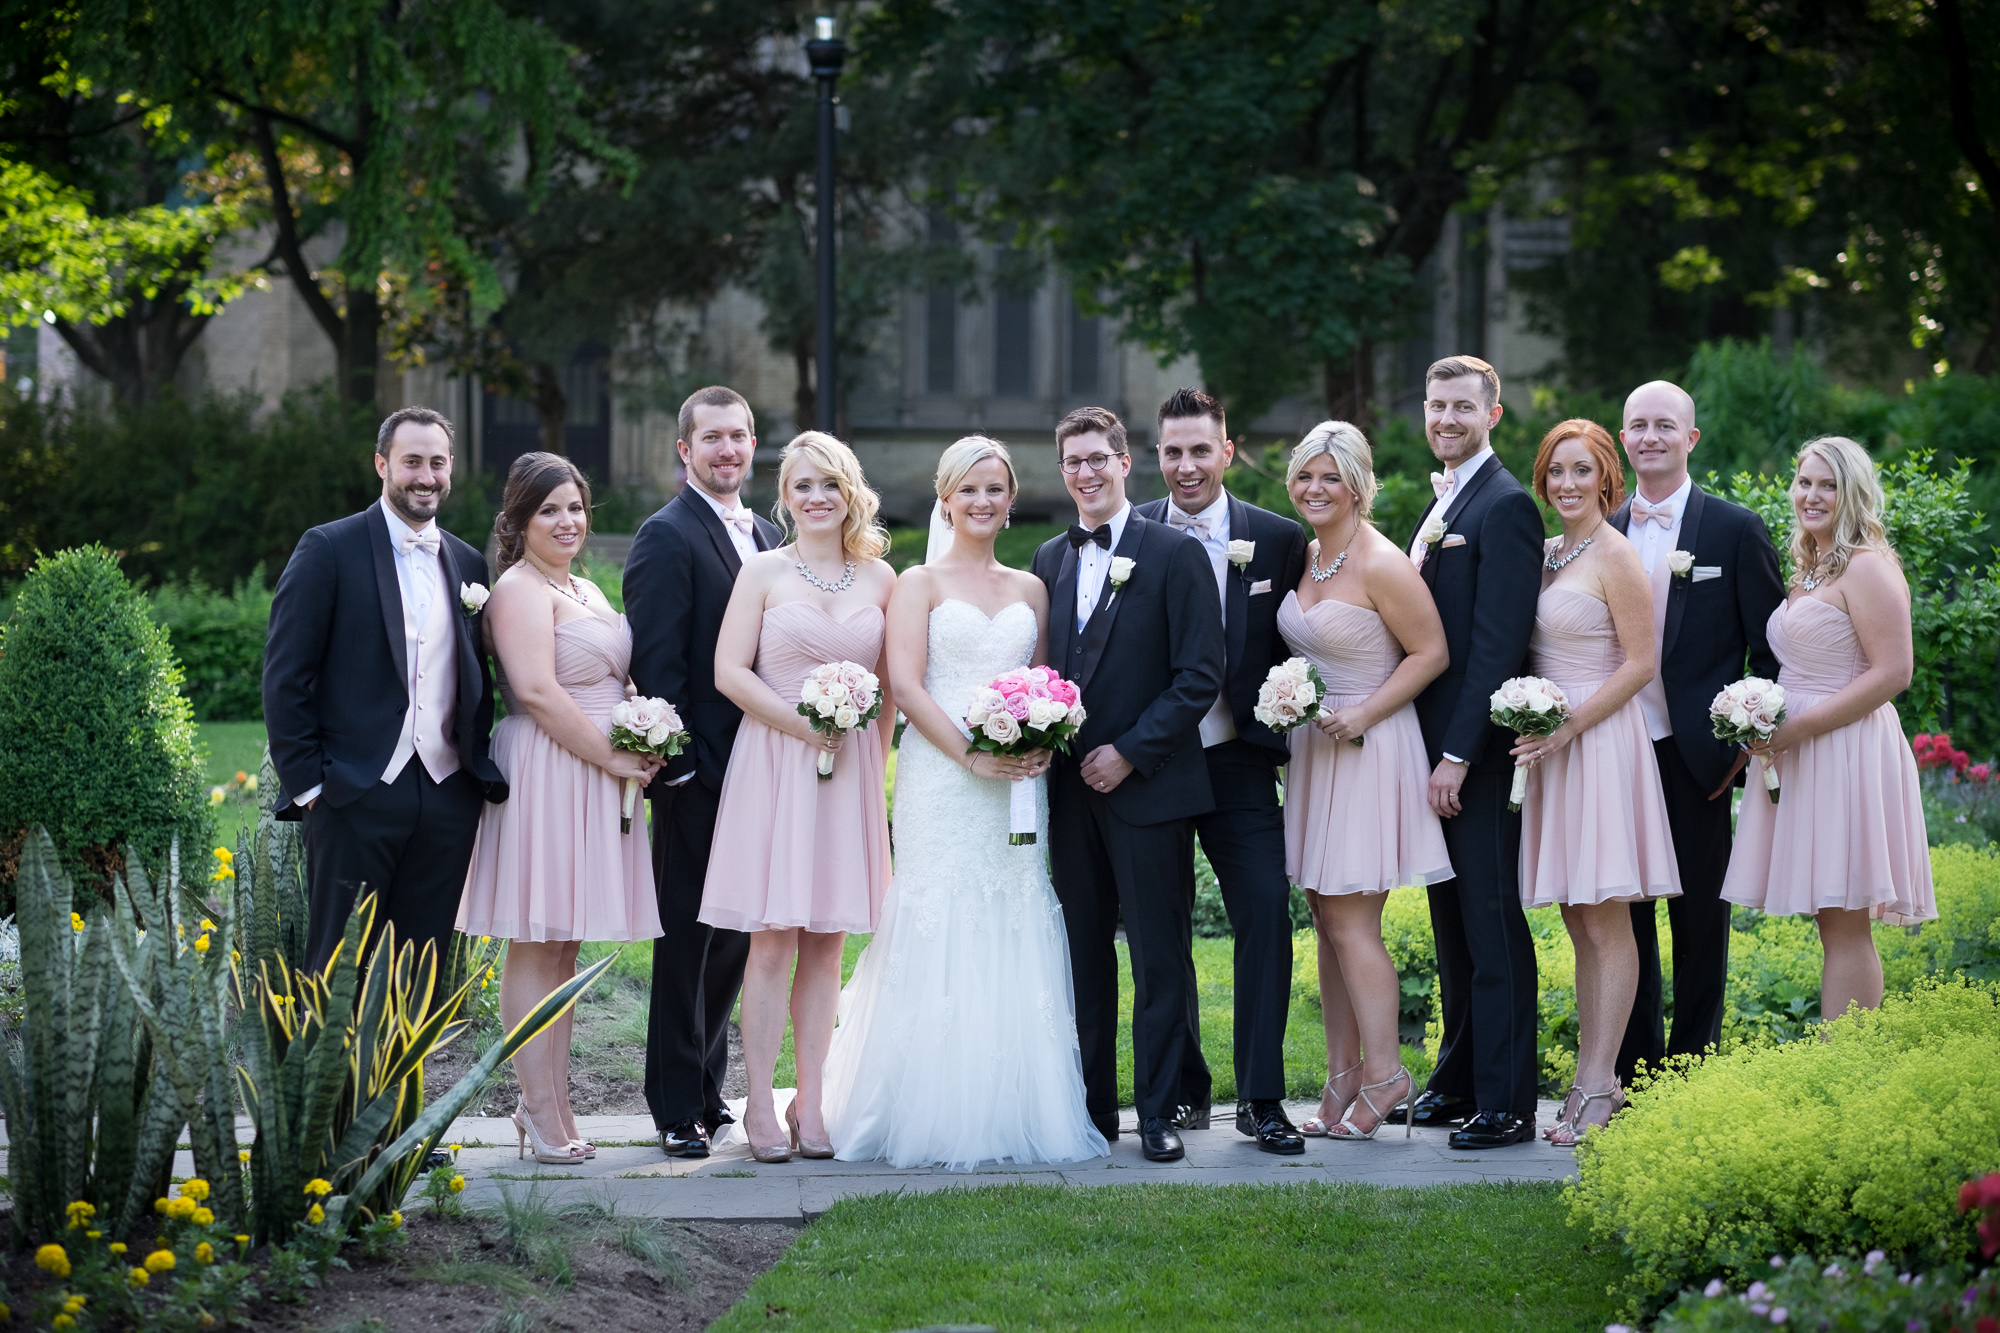 Danielle and Eric pose with for a portrait with their wedding party at a park in downtown Toronto.